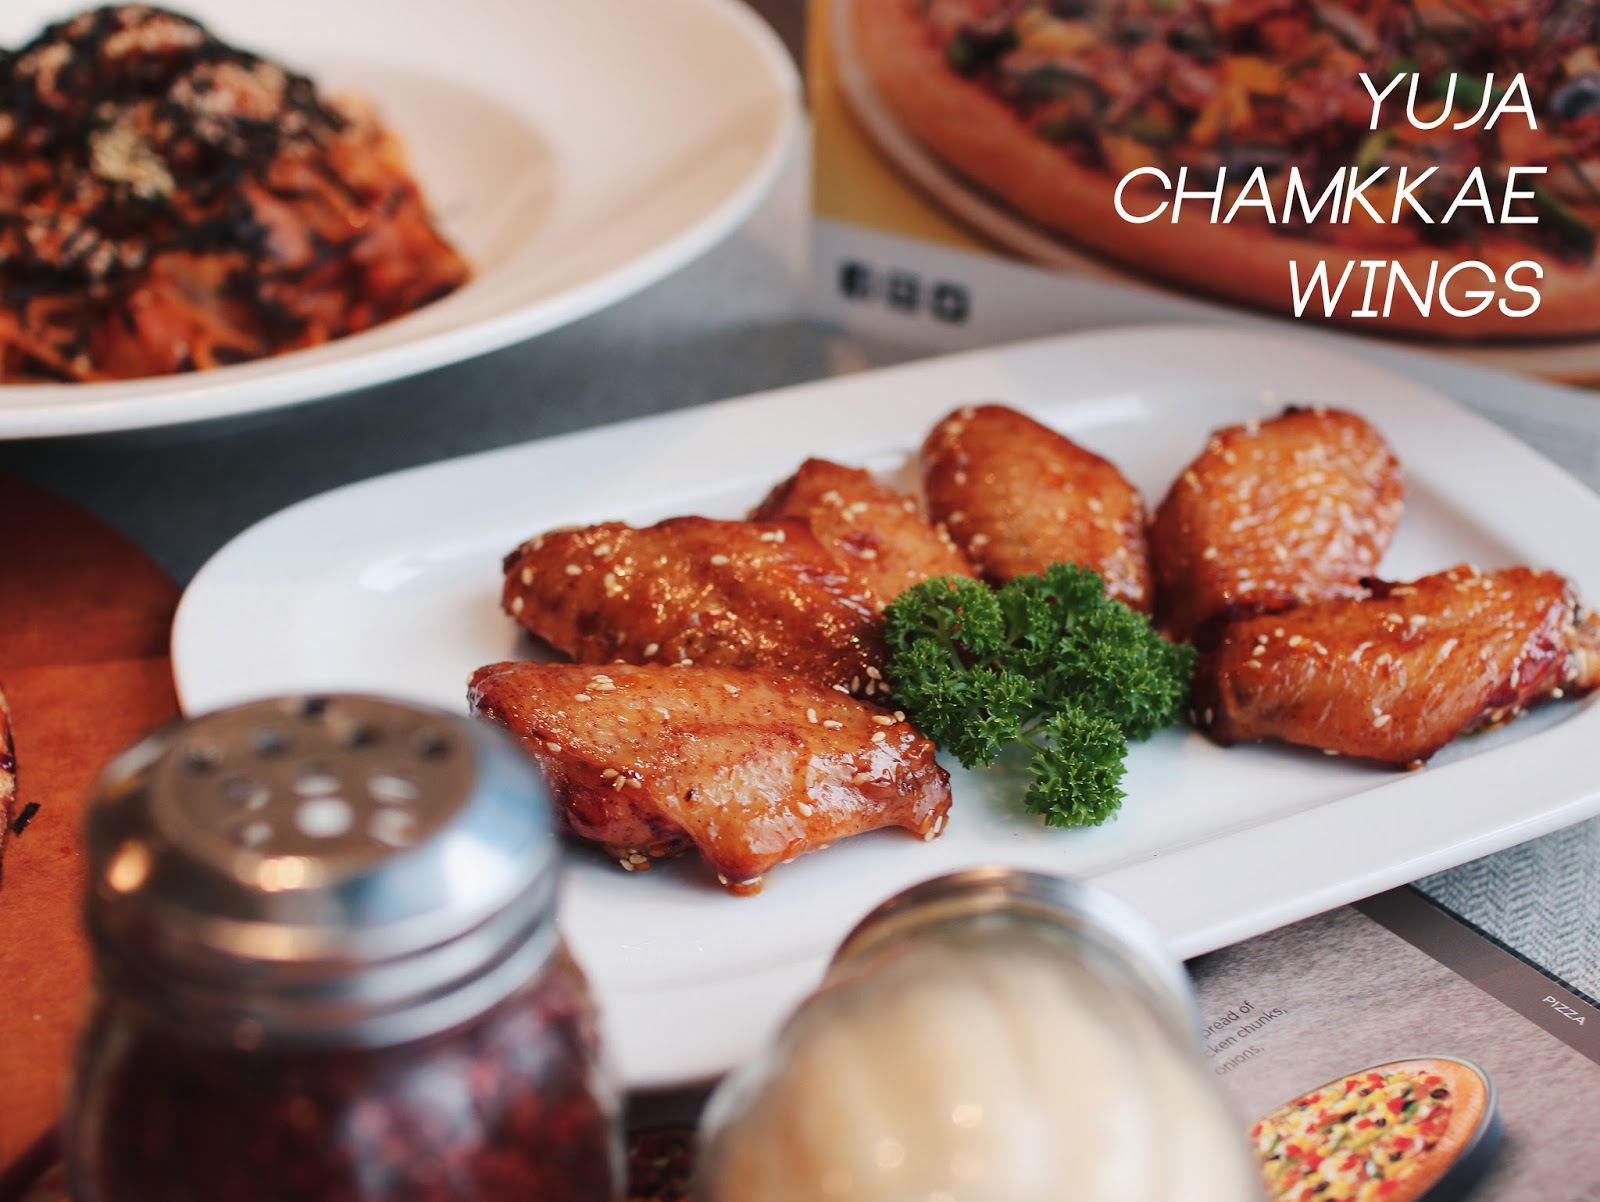 yuja chicken, yujucha, chamkkae, korean fried chicken, pizza hut, review